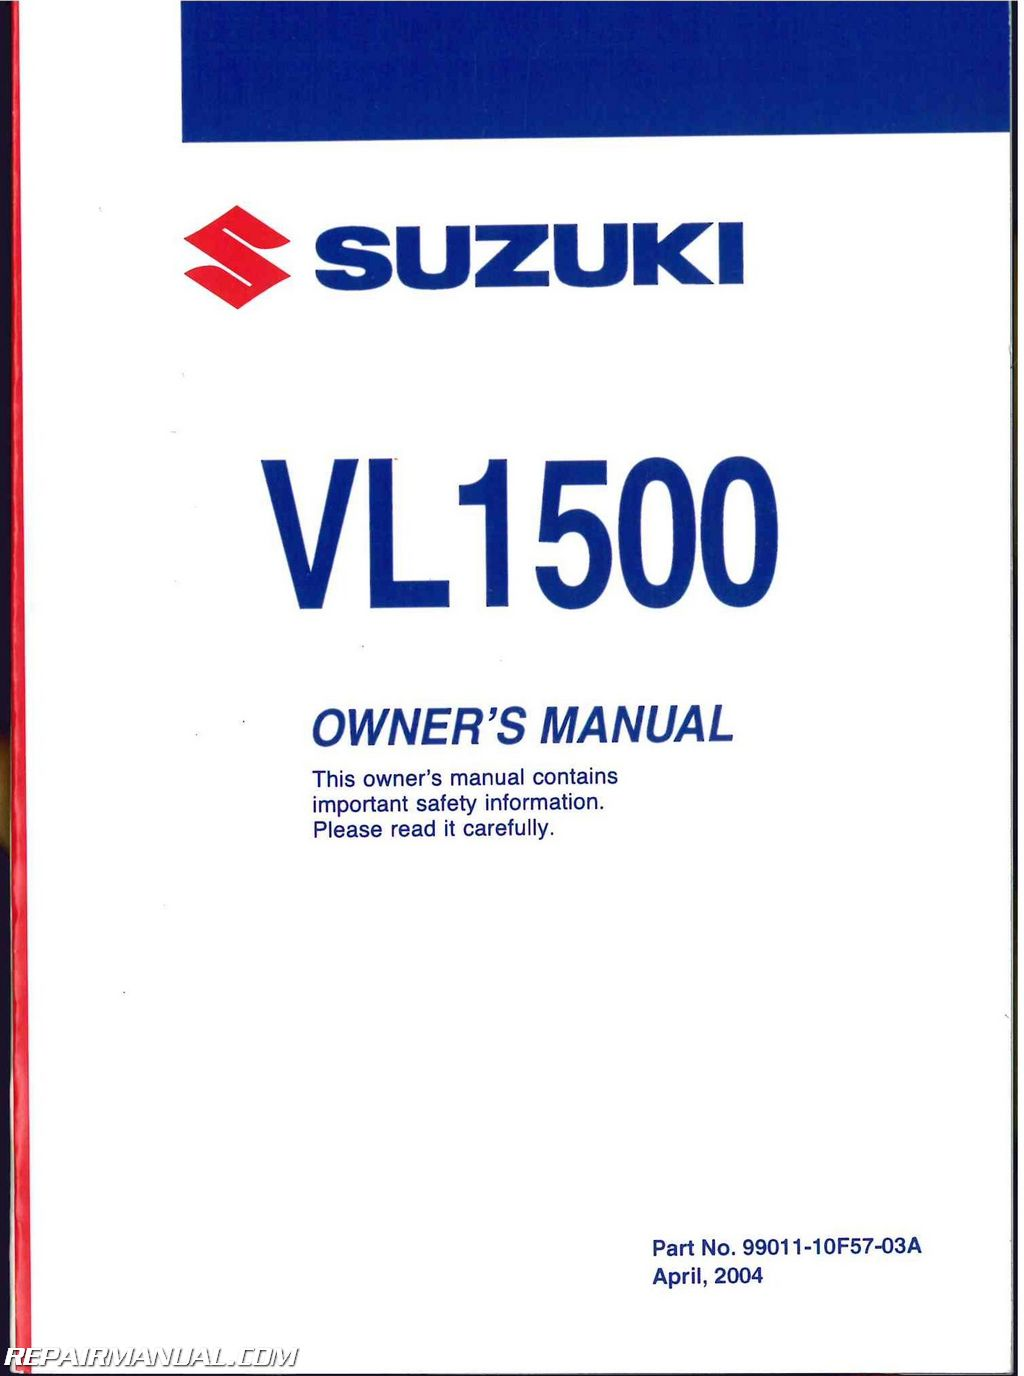 2005 suzuki boulevard c90 c90t vl1500 motorcycle owners manual rh repairmanual com 2005 owners manual great west classic 2005 owners manual ford f150